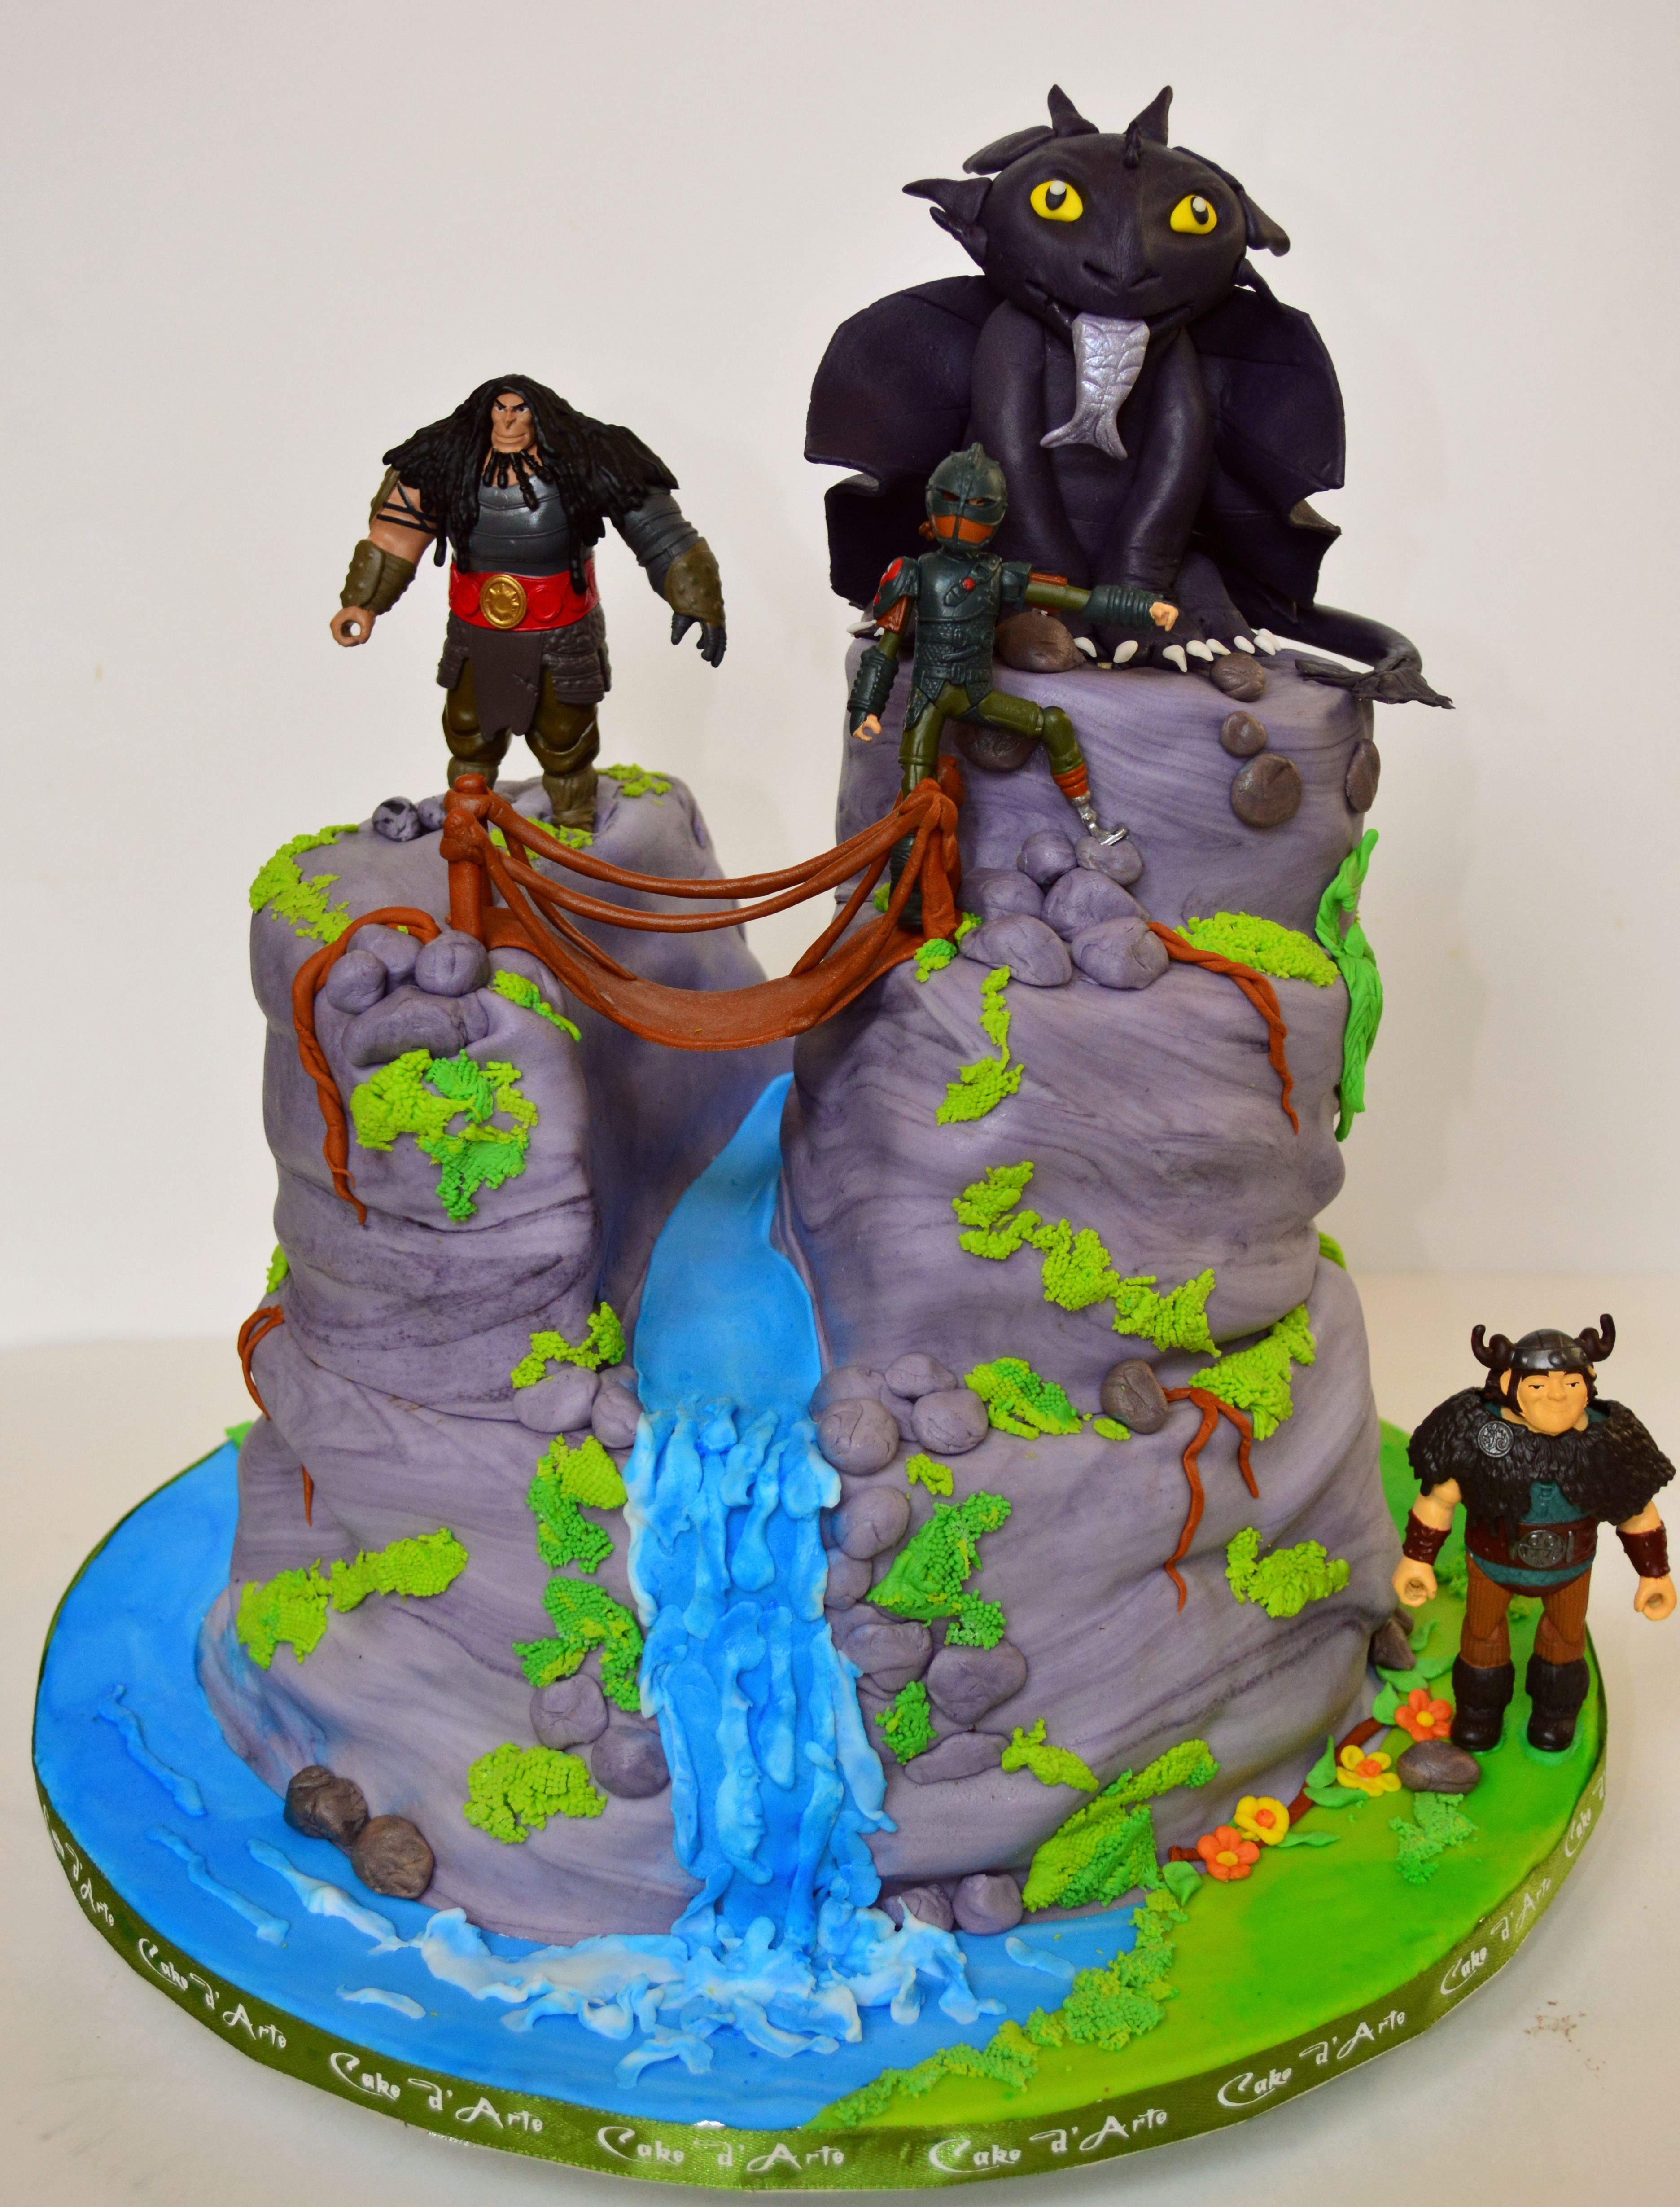 21+ Awesome Picture of How To Train Your Dragon Birthday Cake